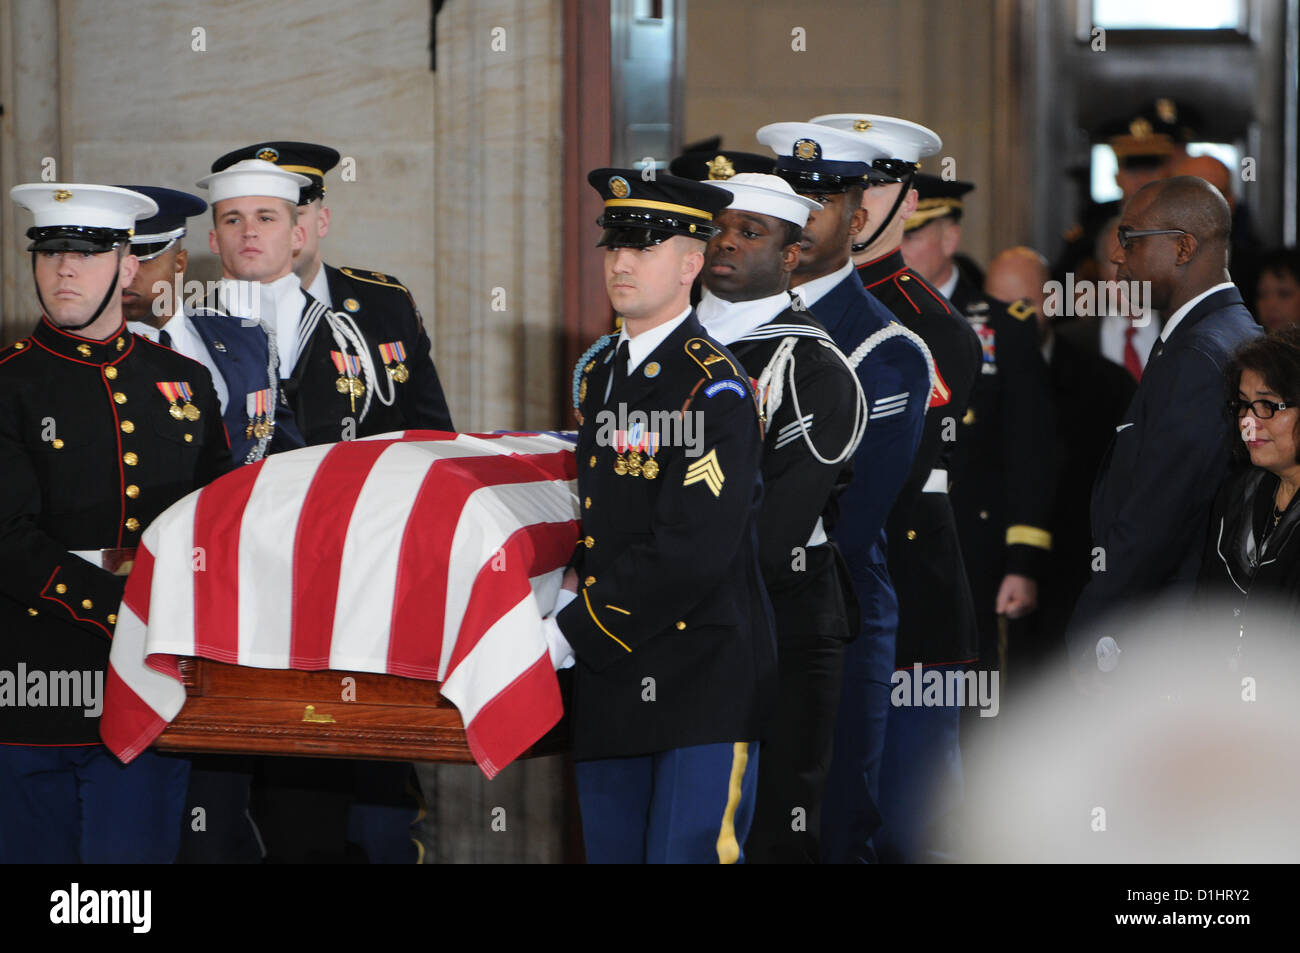 Military honor guards remove the casket of Senator Daniel Inouye after lying in state in the Rotunda of the US Capitol - Stock Image